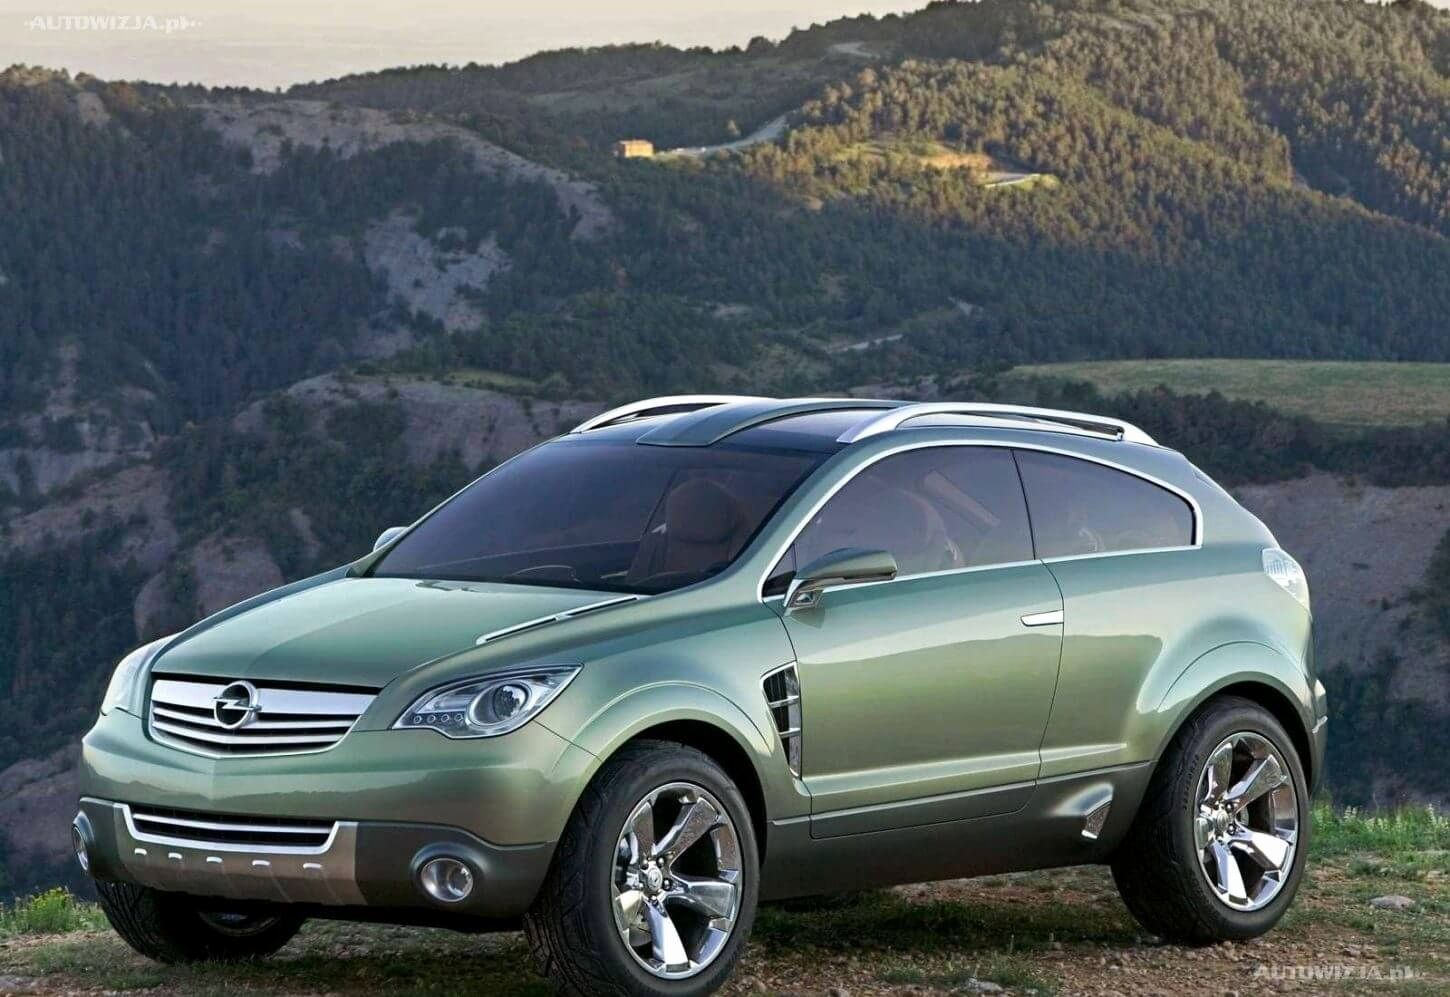 2020 Opel Antara 2018 Rumors In 2020 Opel Suv Cars Car Model